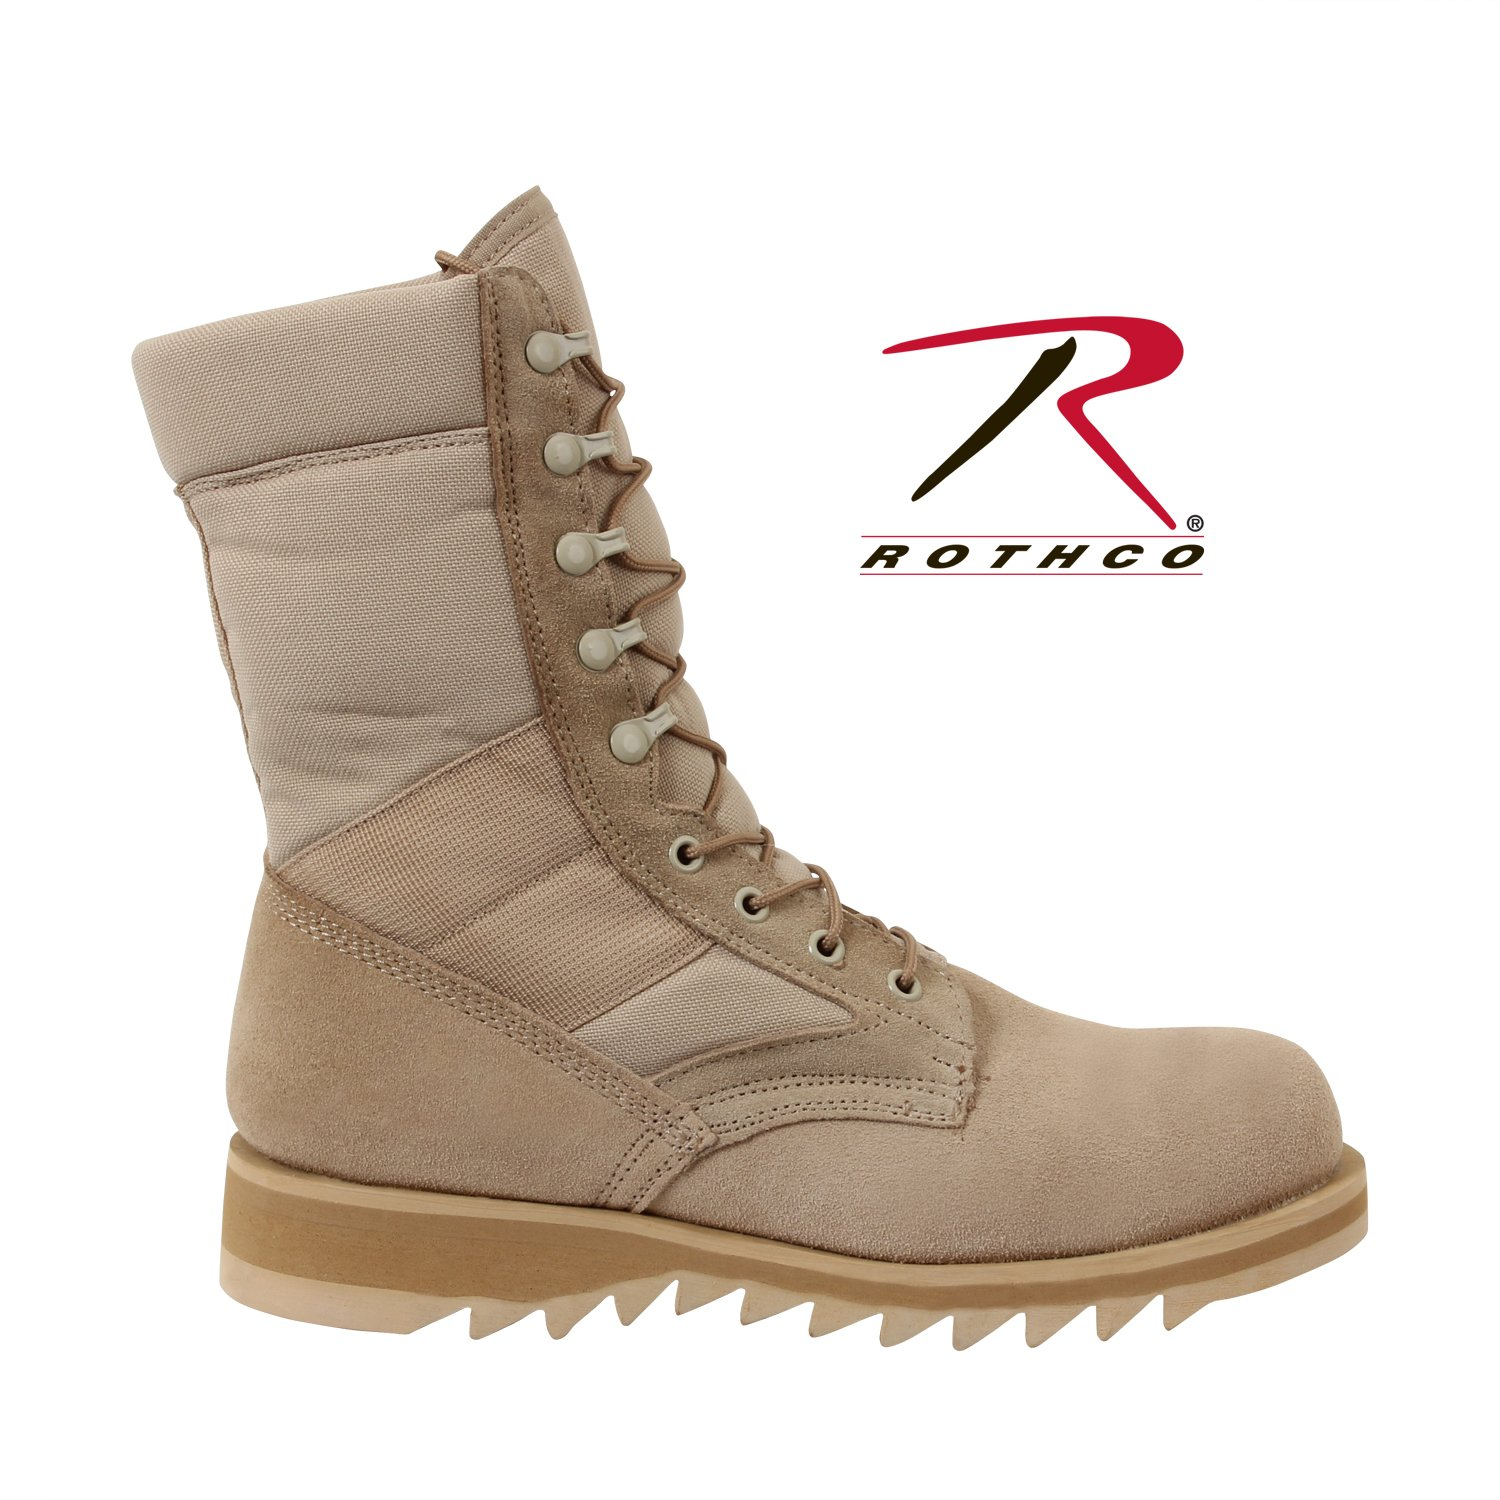 Rothco Desert Tan Ripple Sole Jungle Boot, 13W